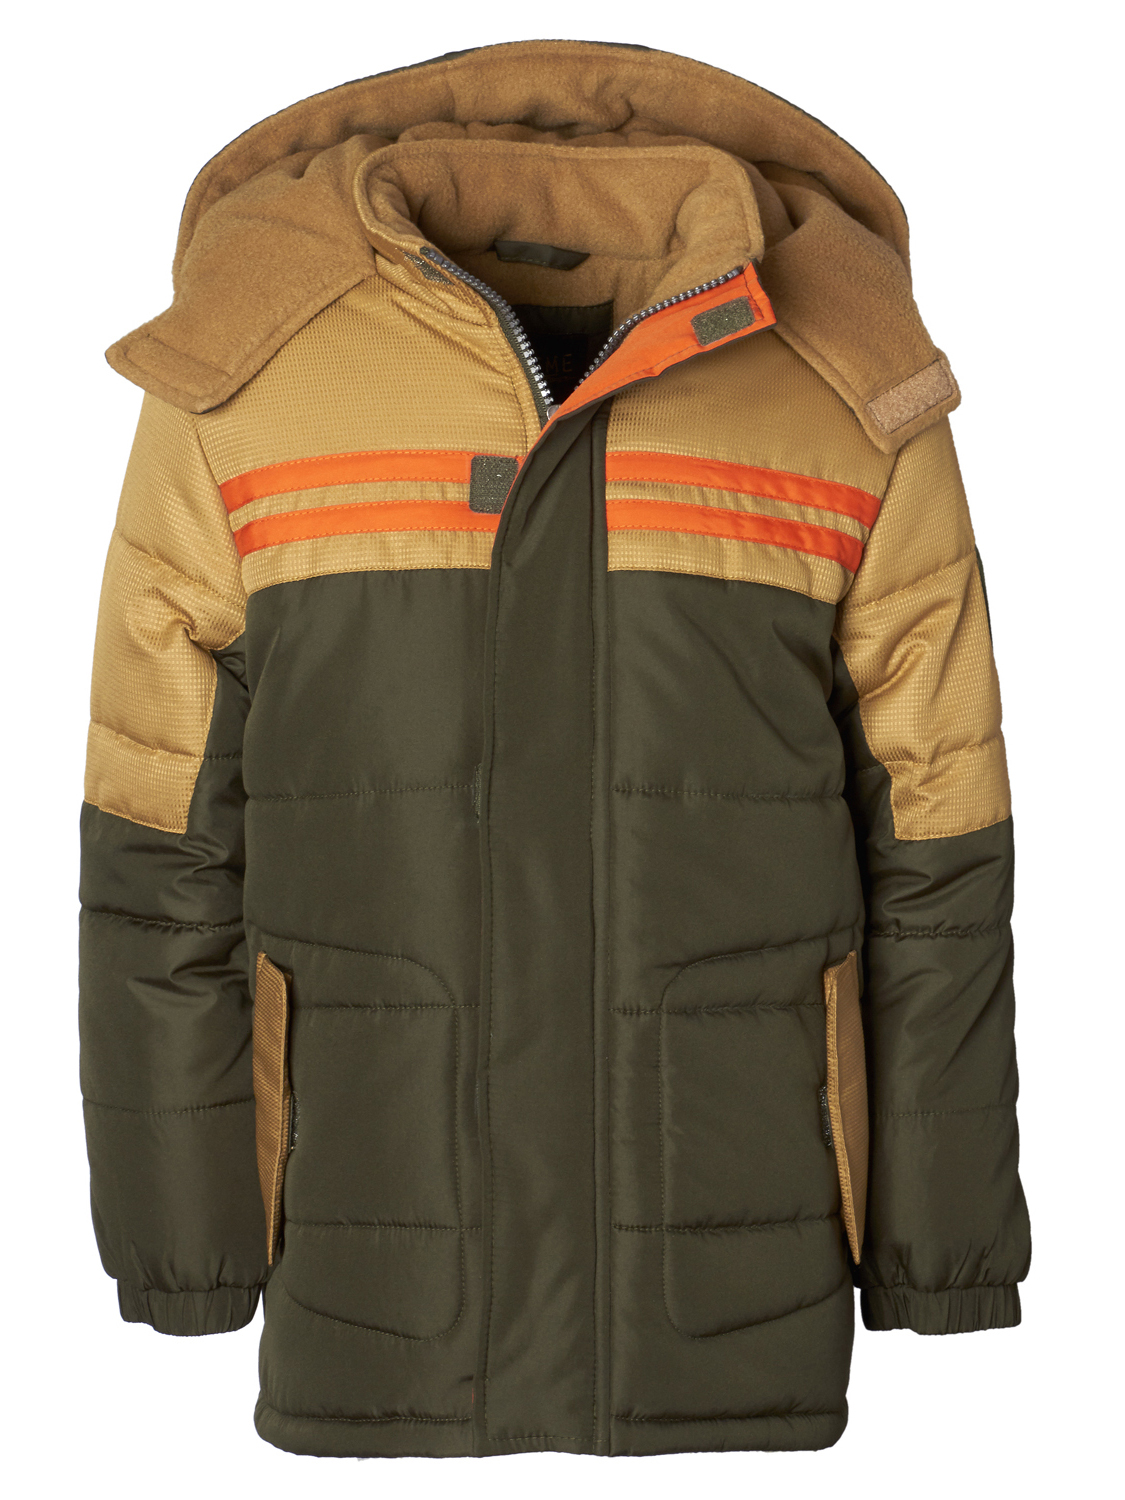 Colorblock Expedition Puffer Jacket (Little Boys & Big Boys)